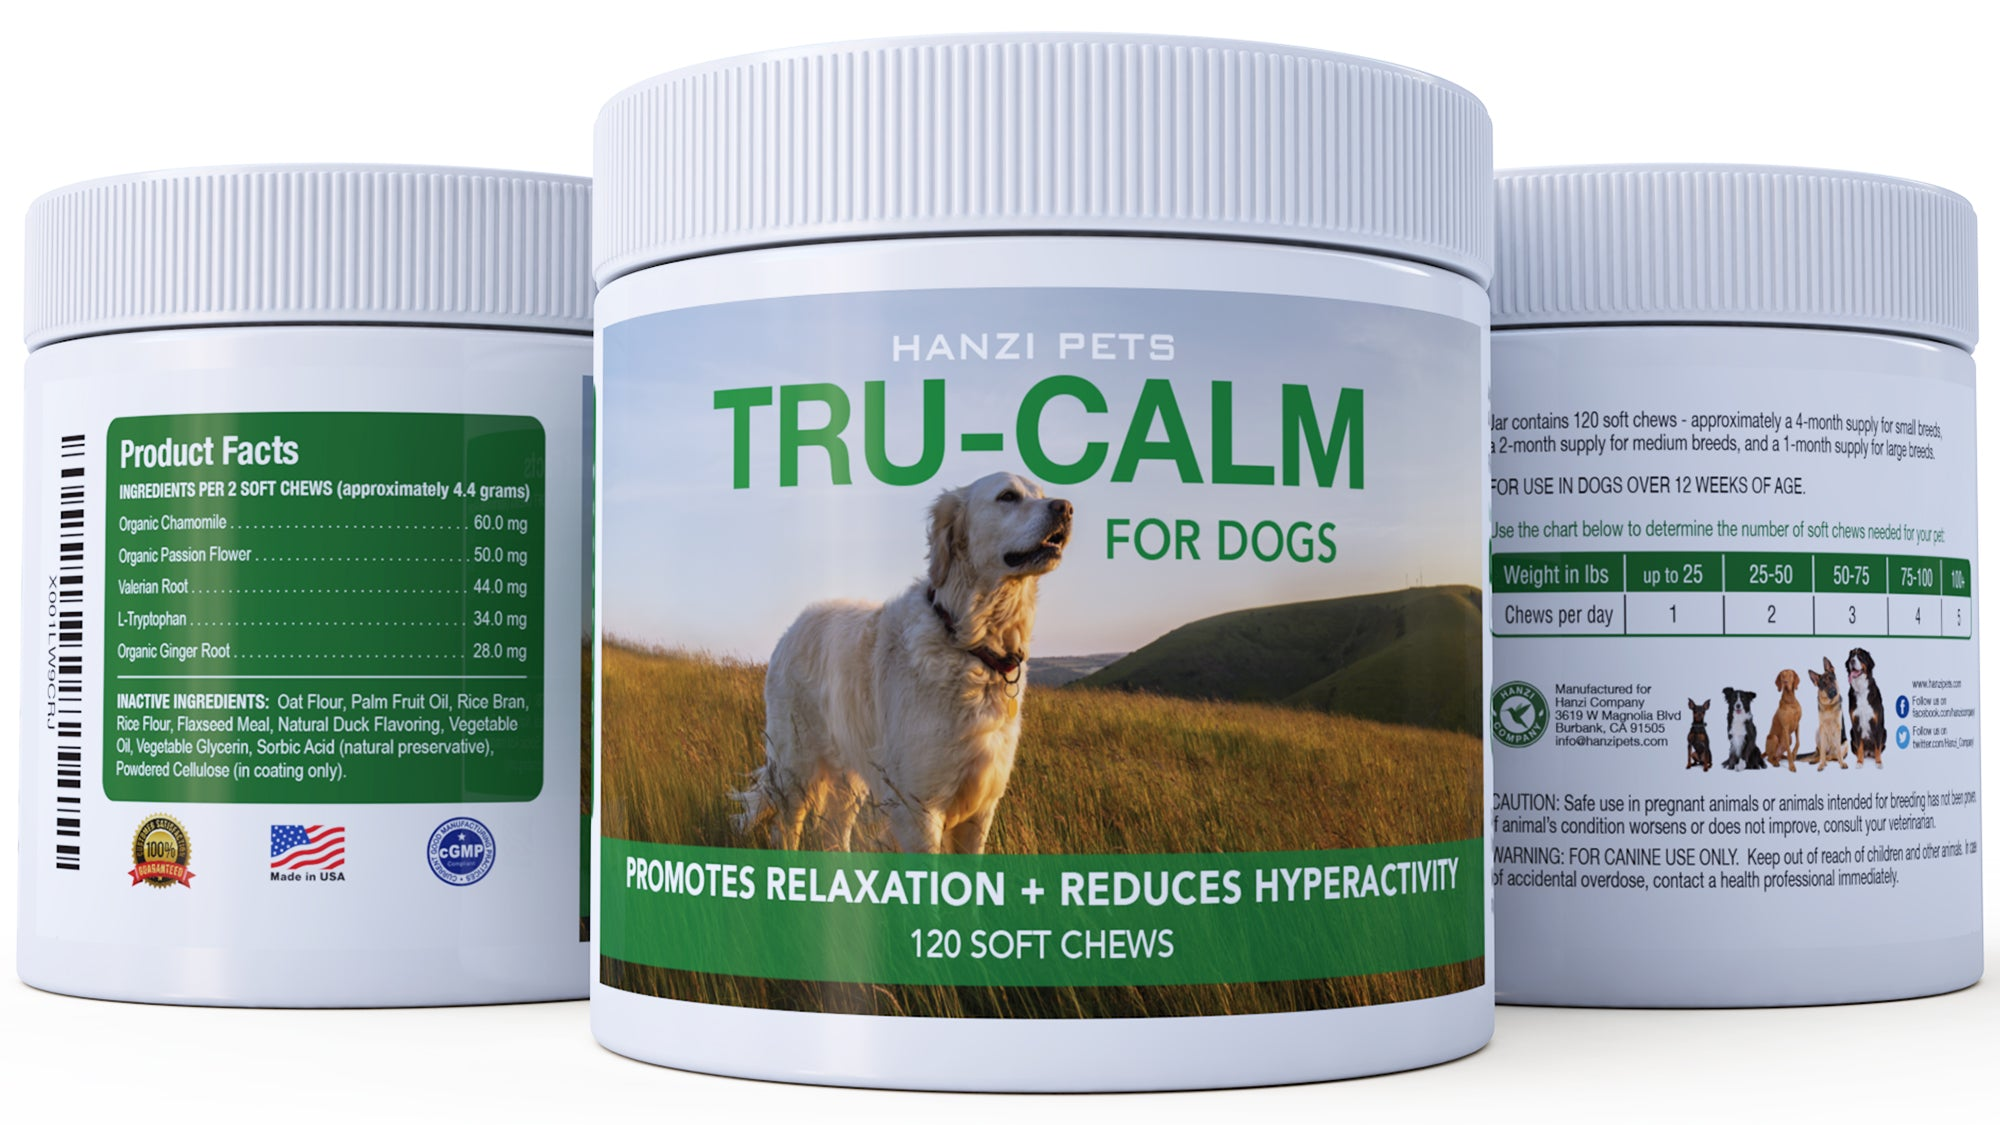 TRU-CALM NATURAL ANXIETY RELIEF – Hanzi Pets